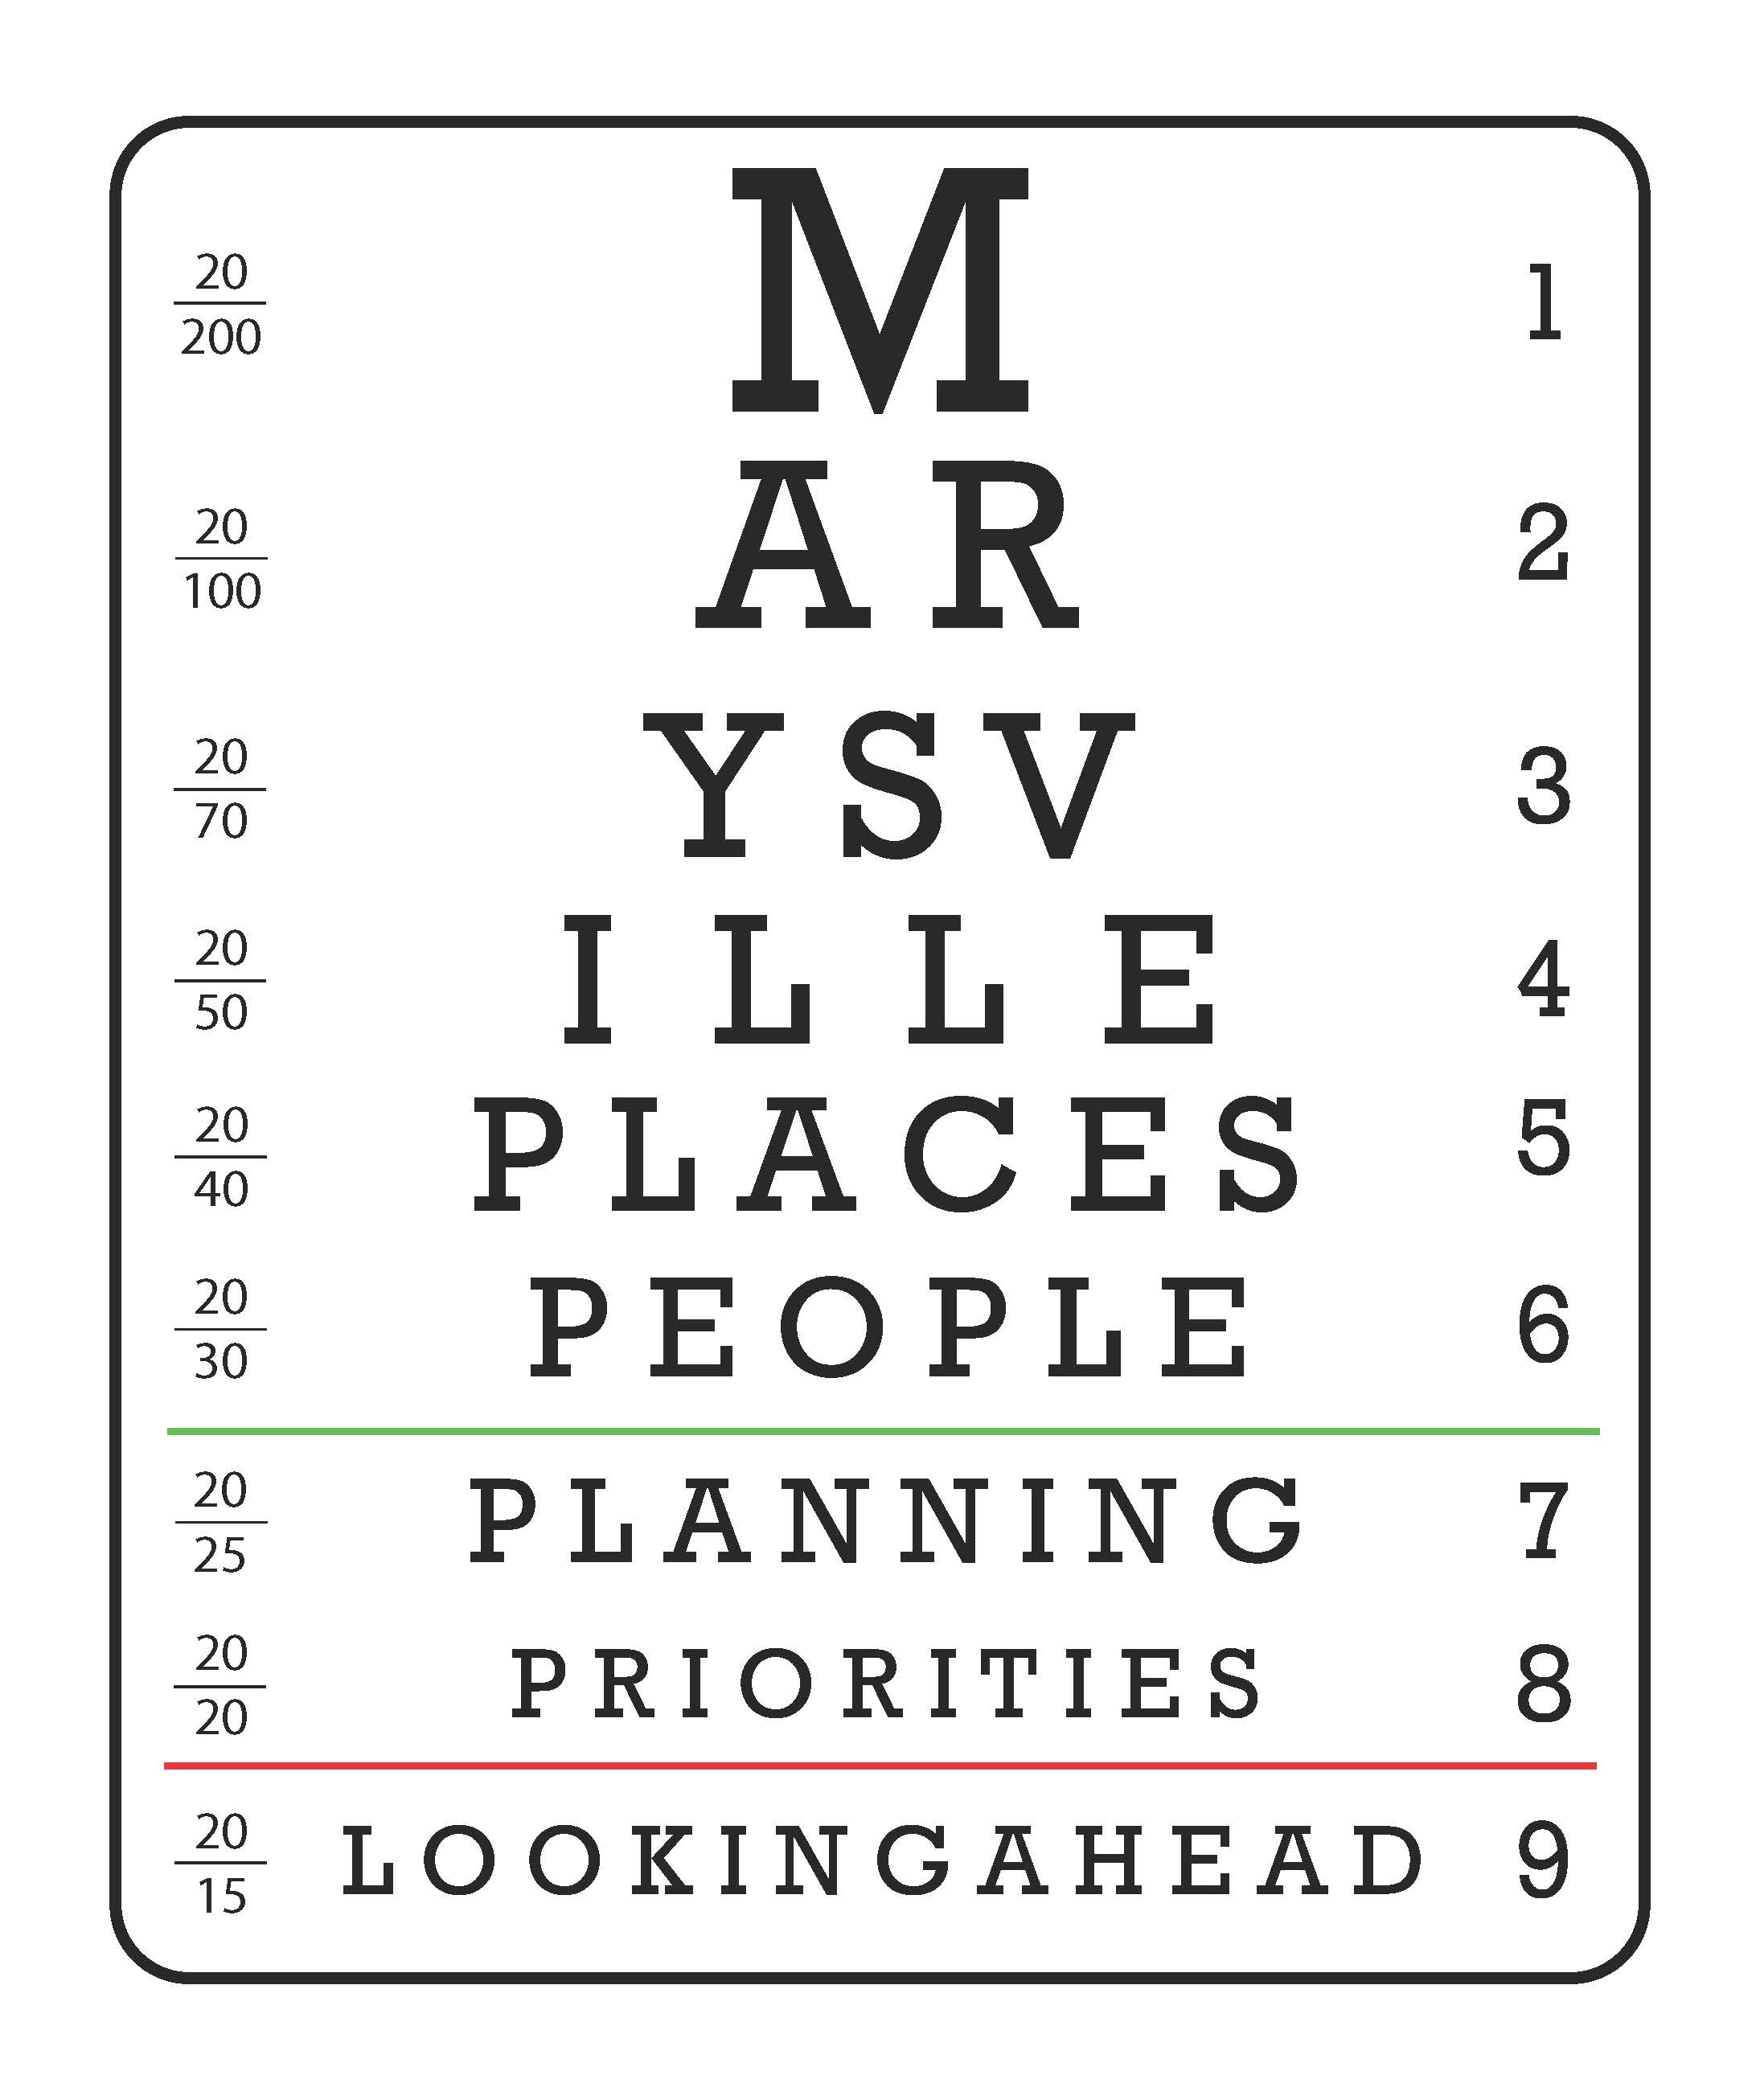 2020 Vision graphic eye chart Marysville People Places Planning Priorities Looking Ahead